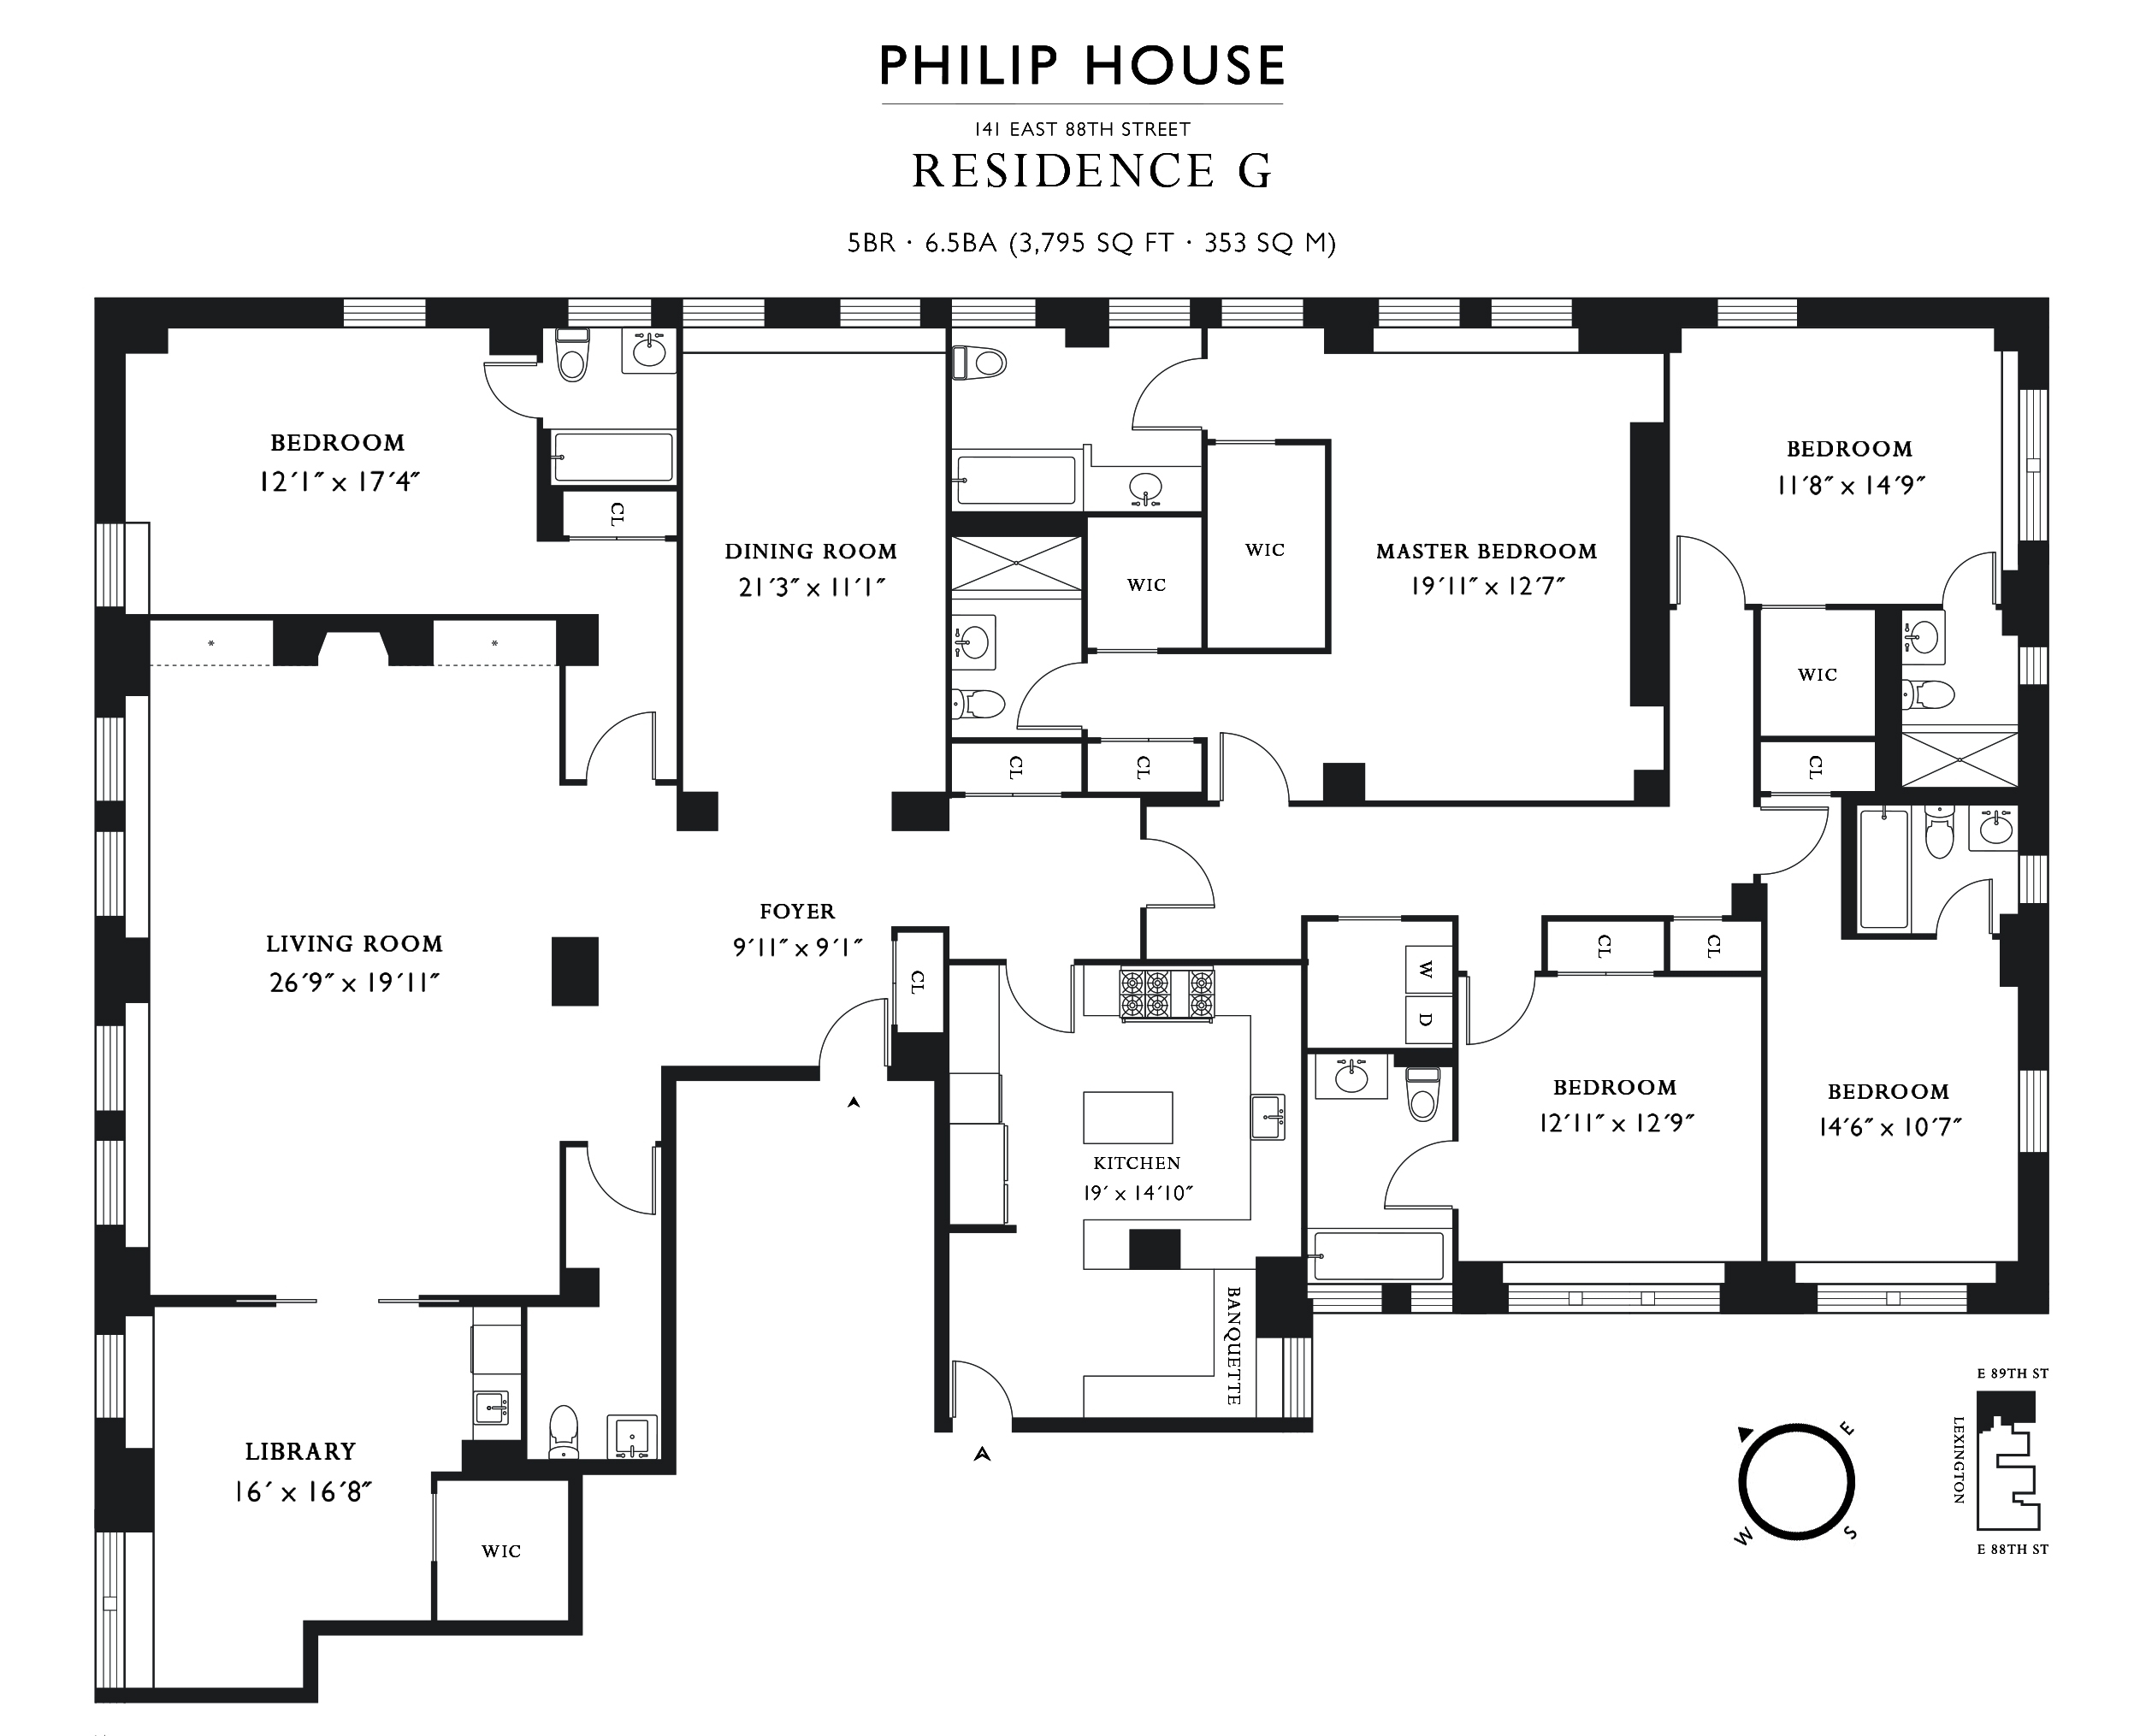 20 Simple House Floor Plan With Measurements Ideas Photo